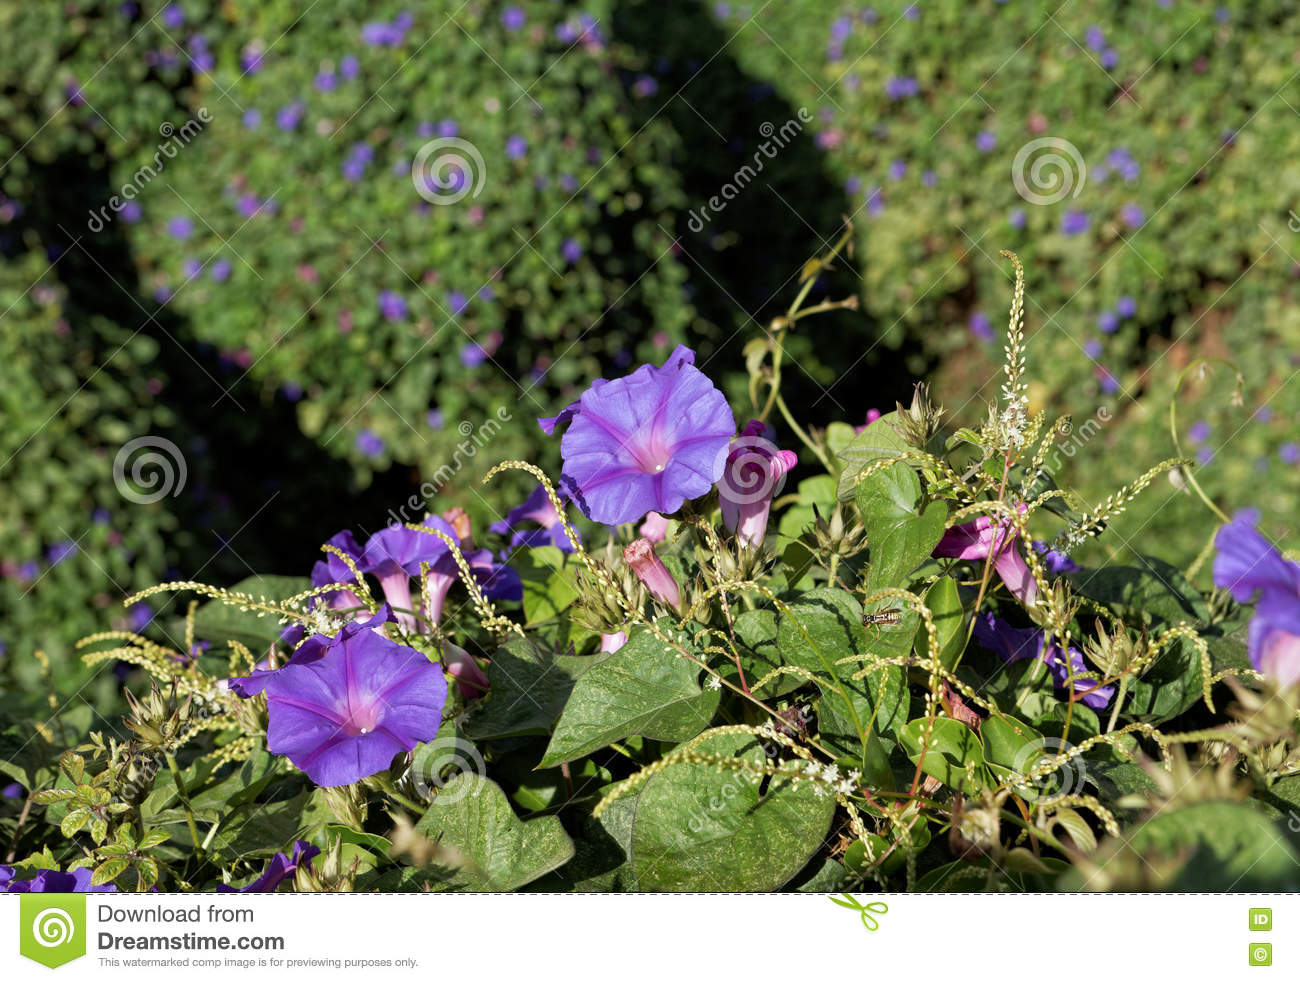 Ipomoea Purpurea Vine With Purple Flowers Stock Photo.